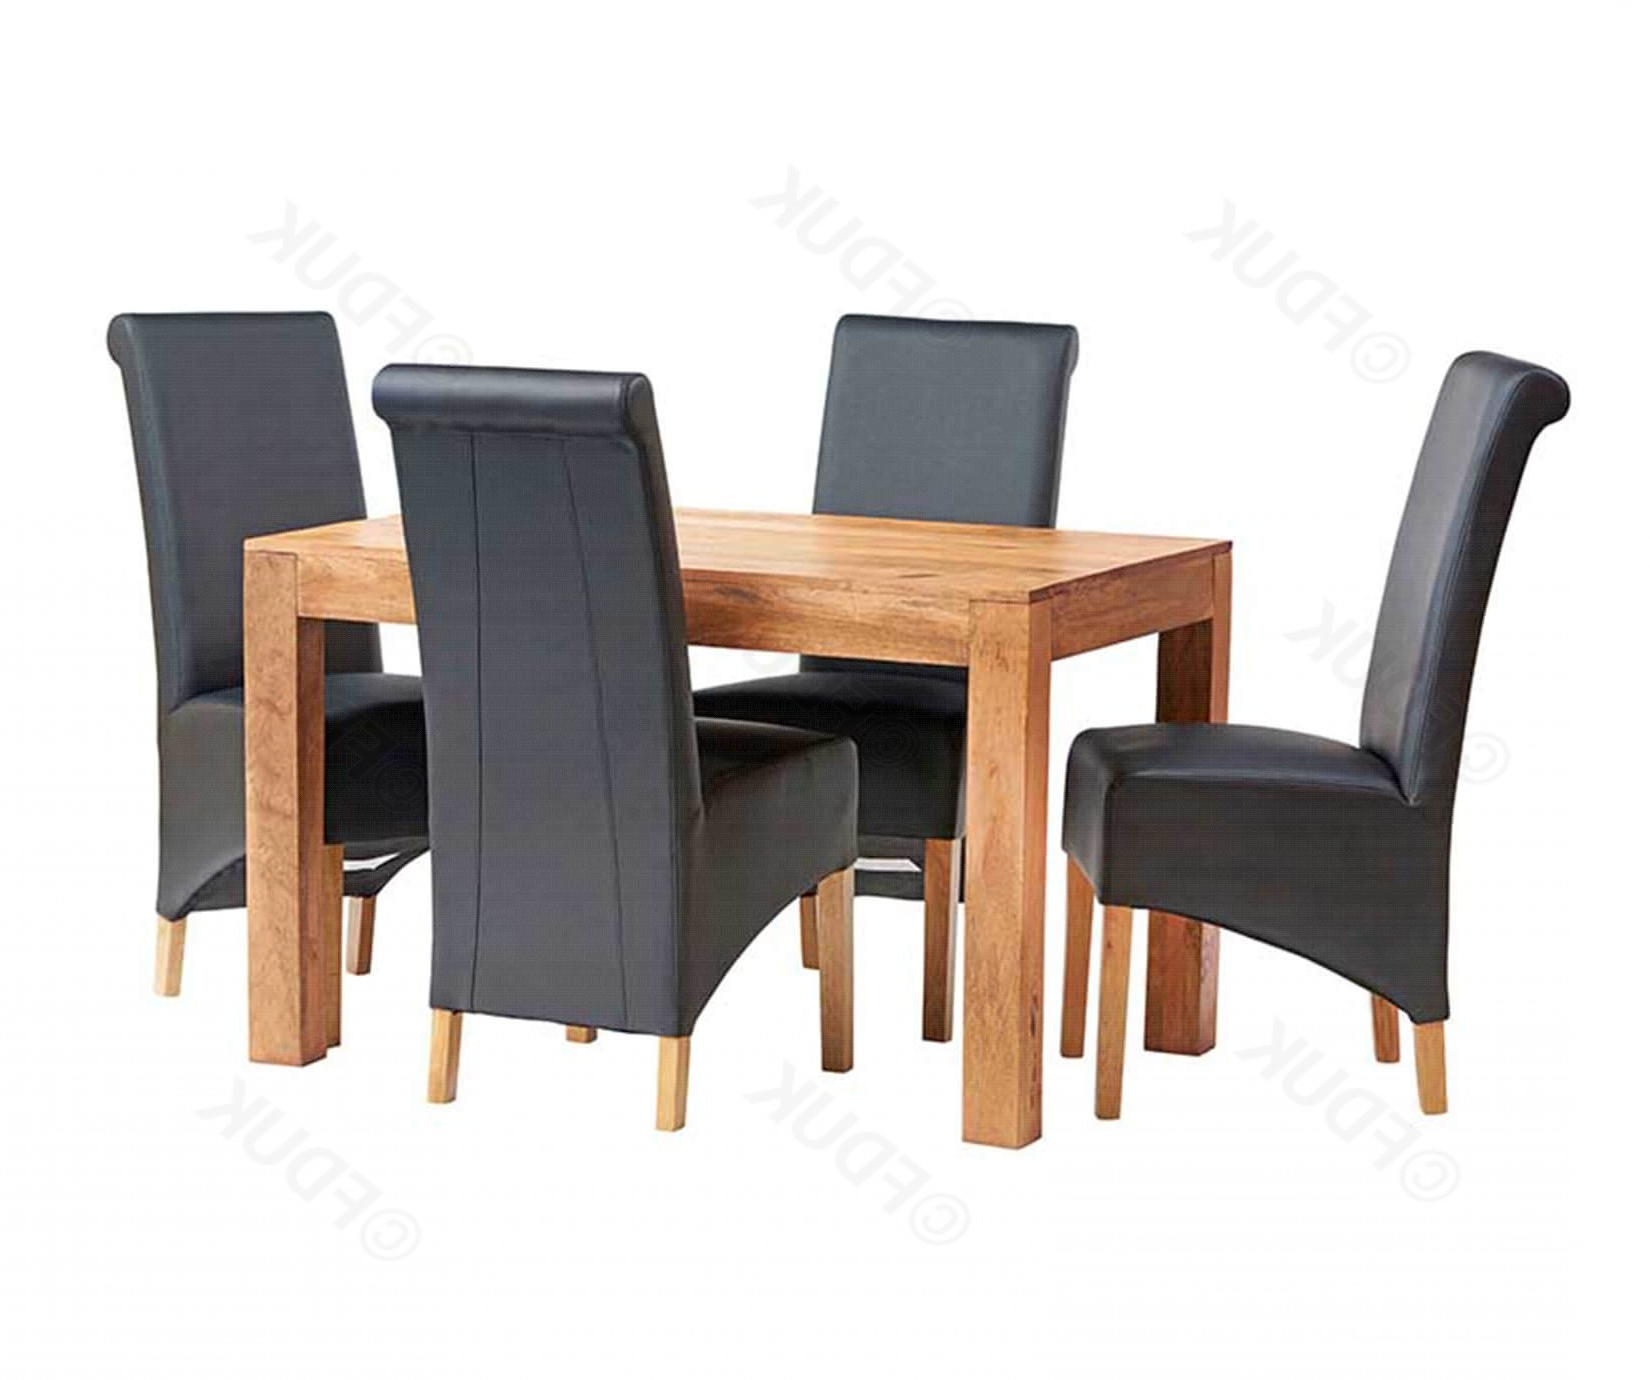 Toko Light Mango Small Dining Table With Regard To Indian Wood Dining Tables (View 20 of 25)